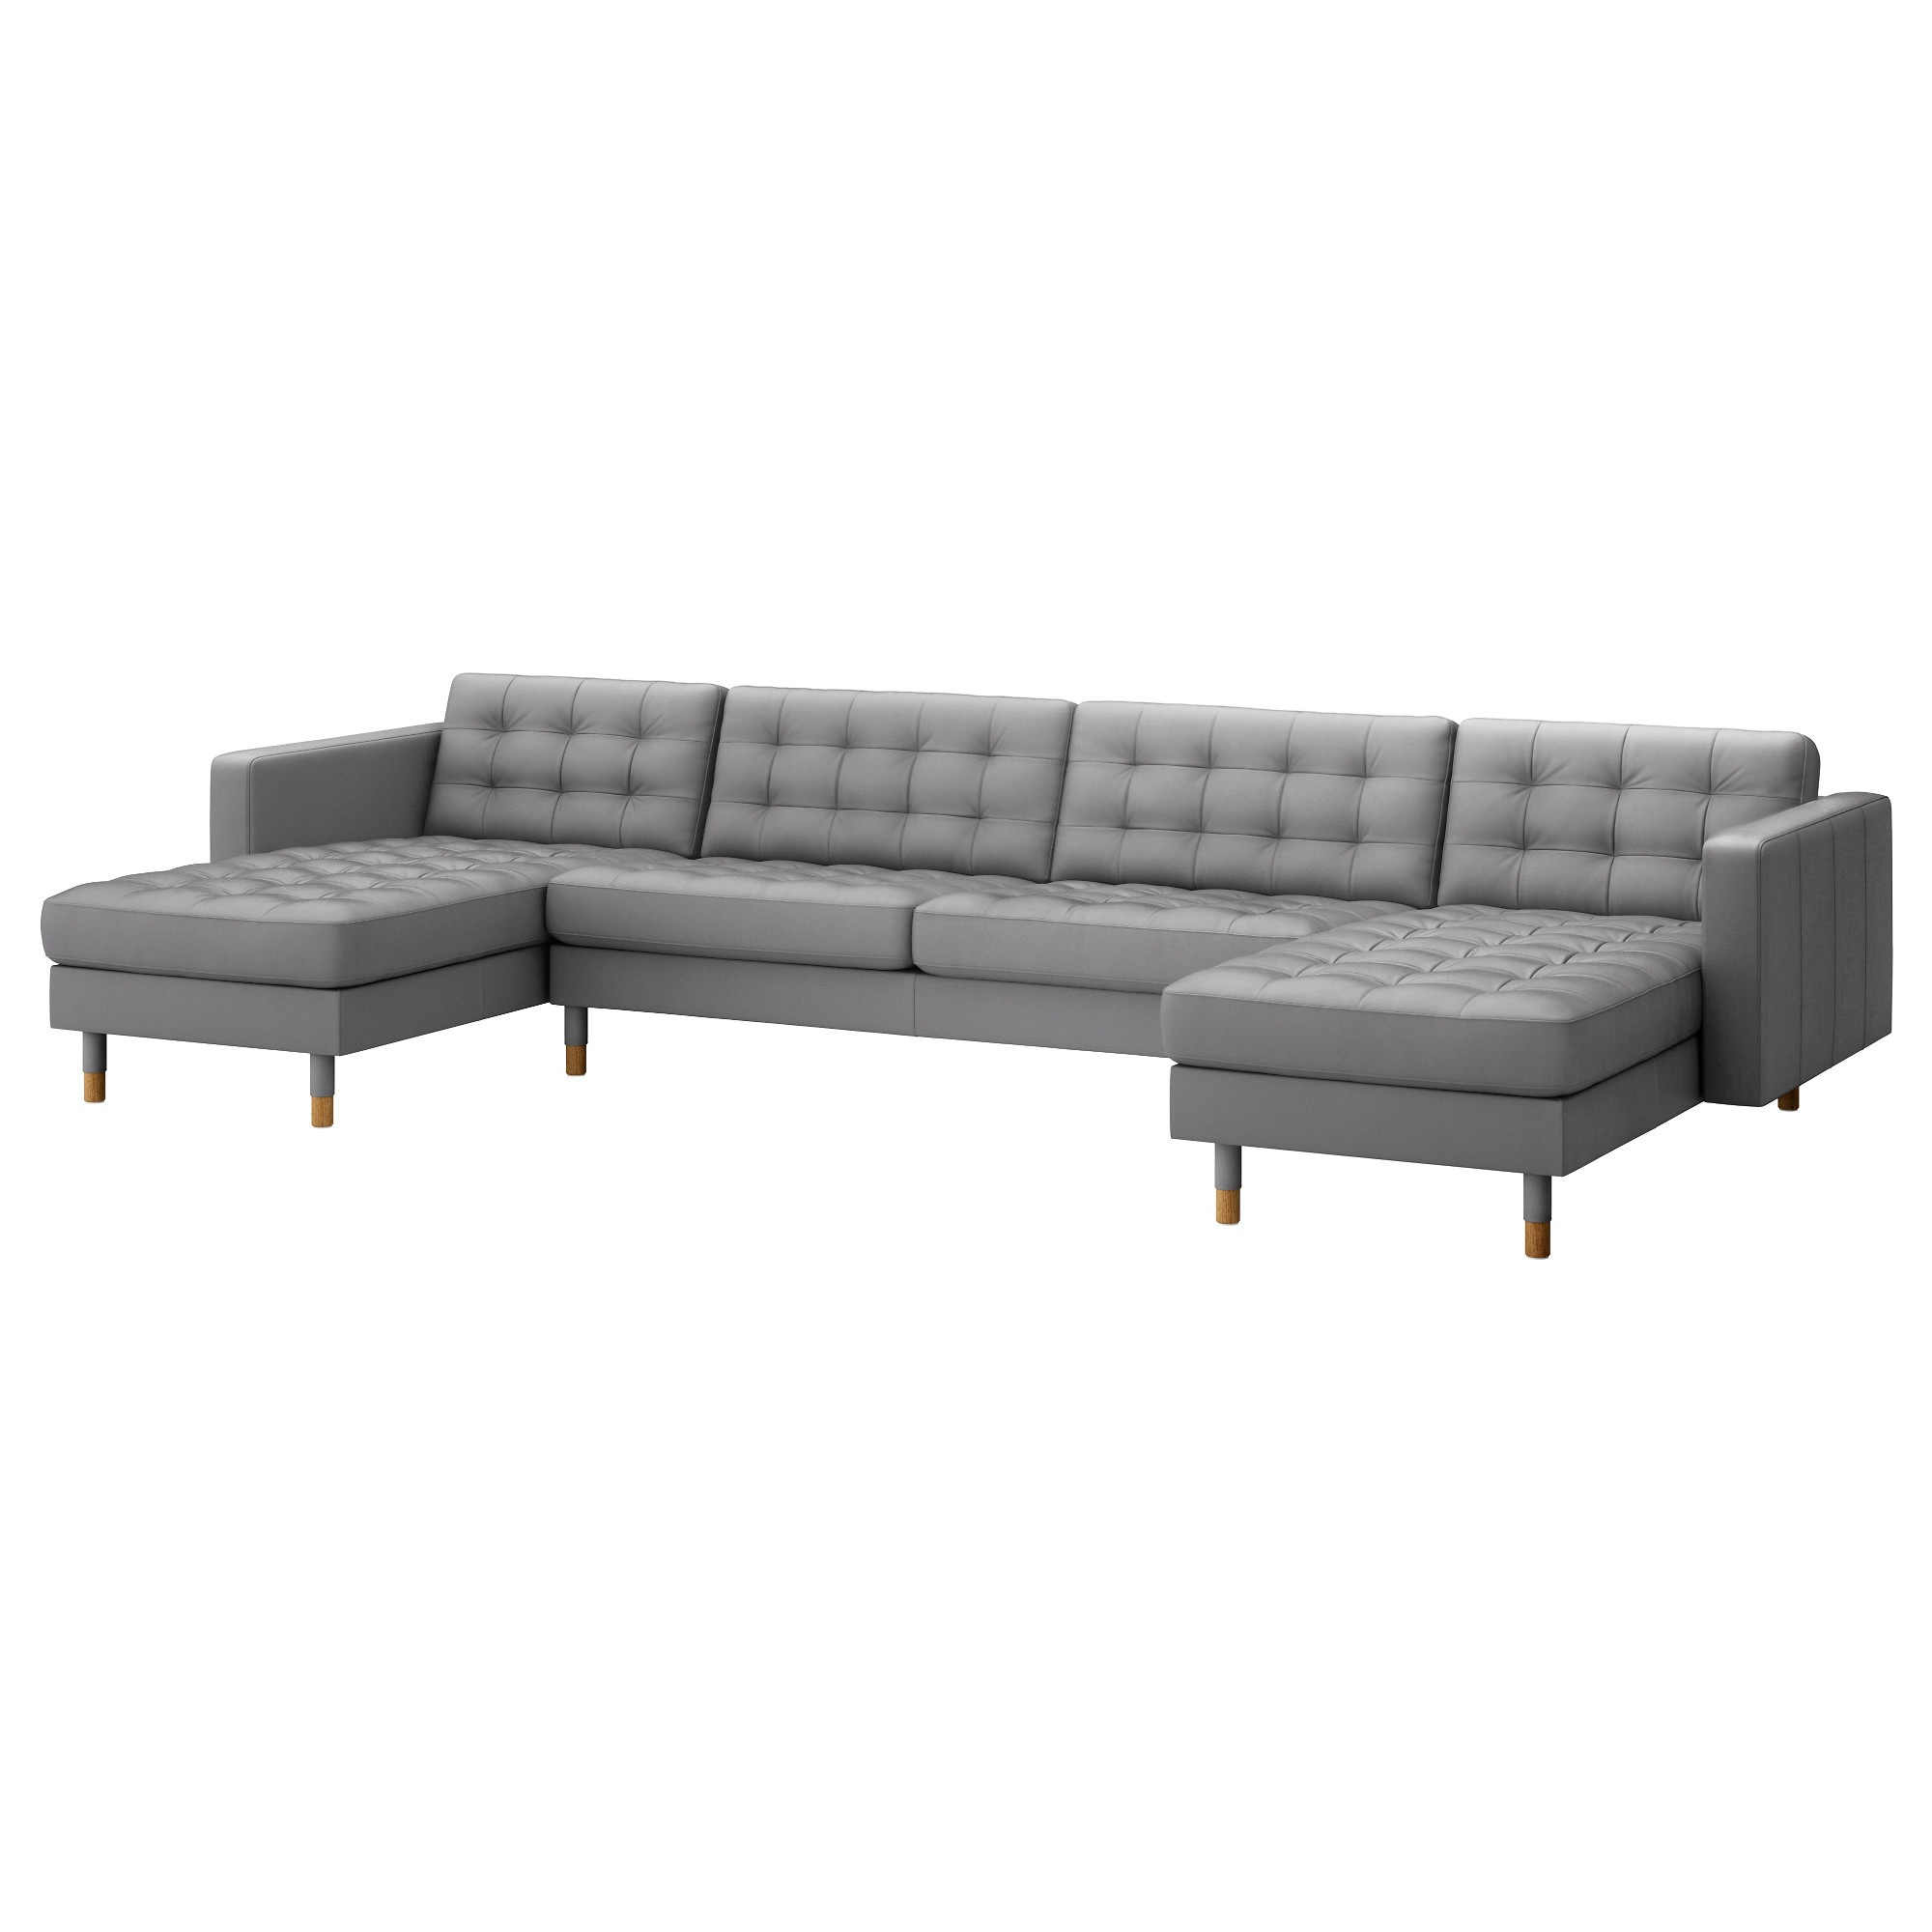 Ledersofa Ikea Säter Himmene Sleeper Sofa Lofallet Beige Height Including Back Cushions